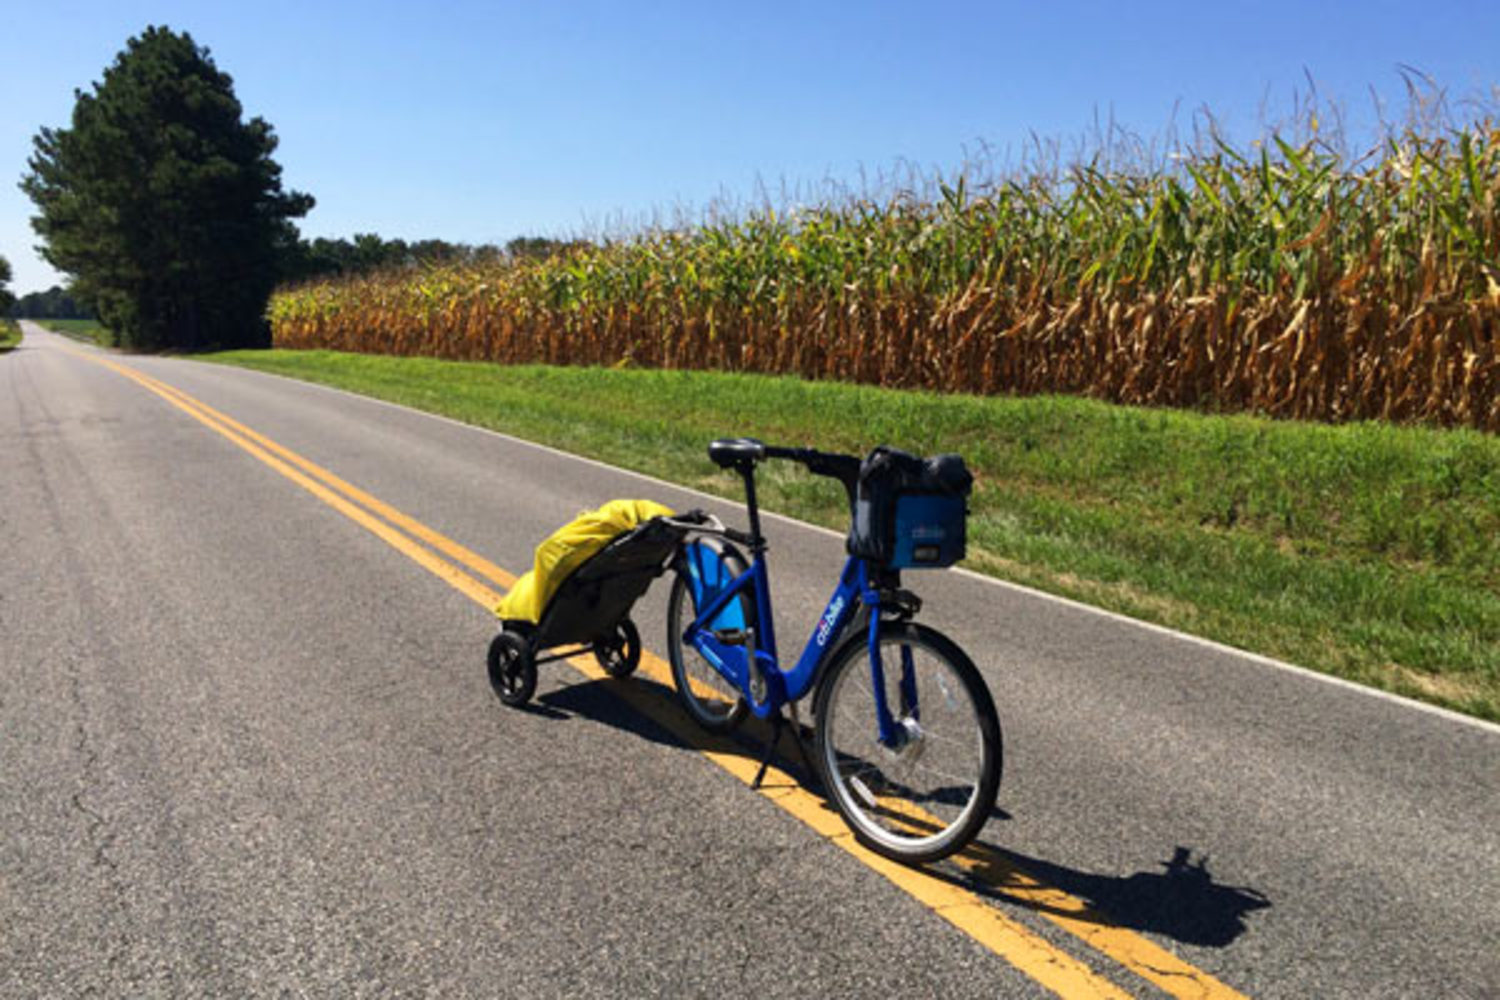 Tanenhaus hauls his travel essentials in a small trailer hitched to the seat post.